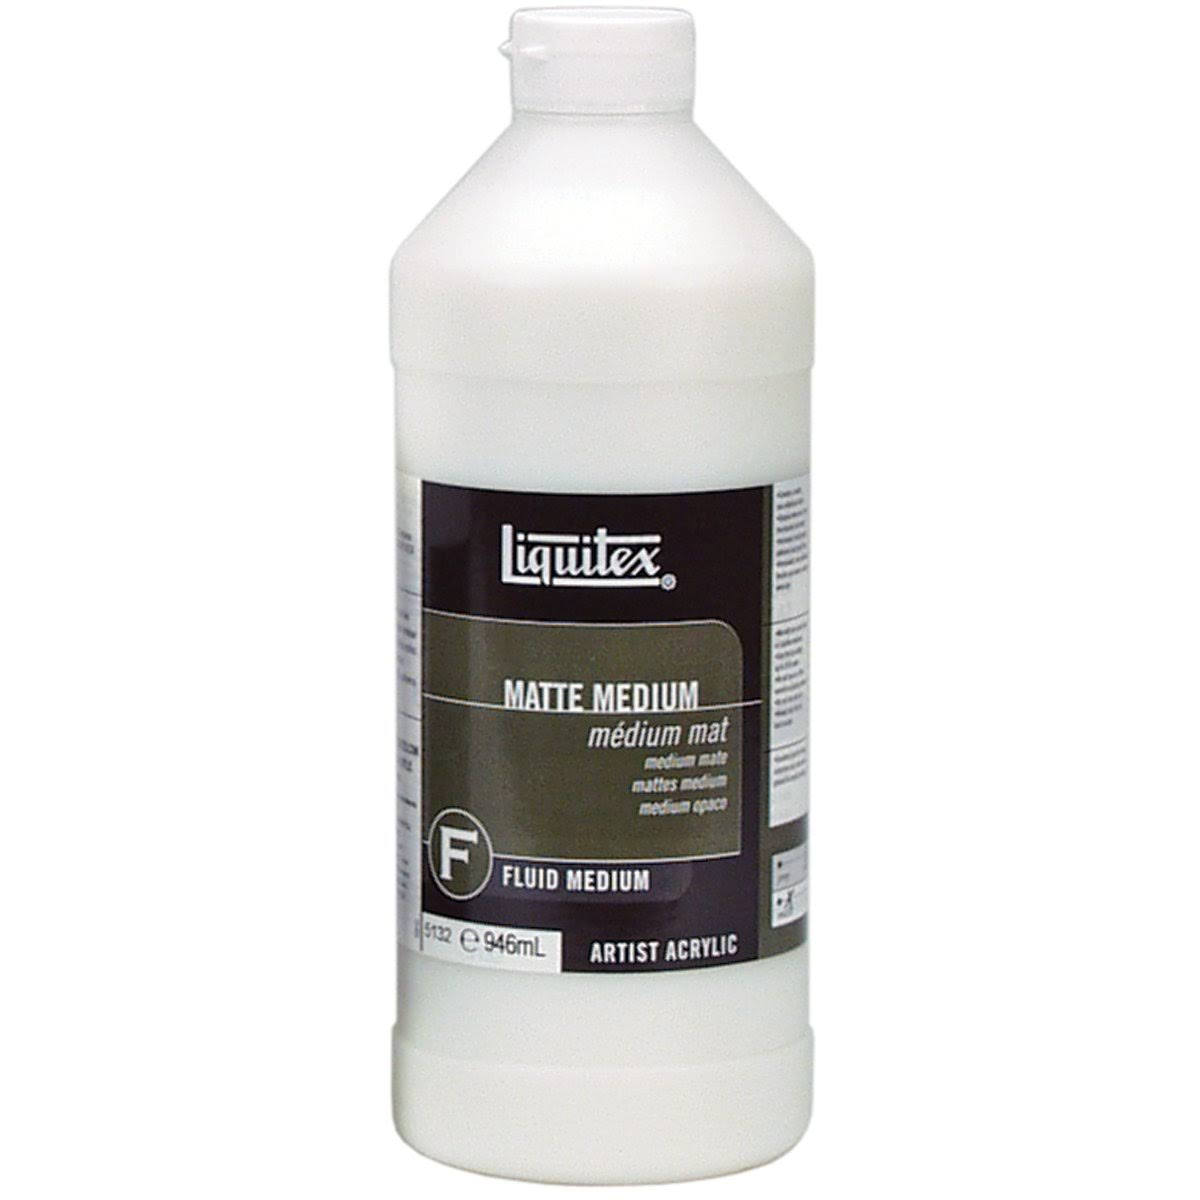 Liquitex Matte Acrylic Fluid Medium - 950ml